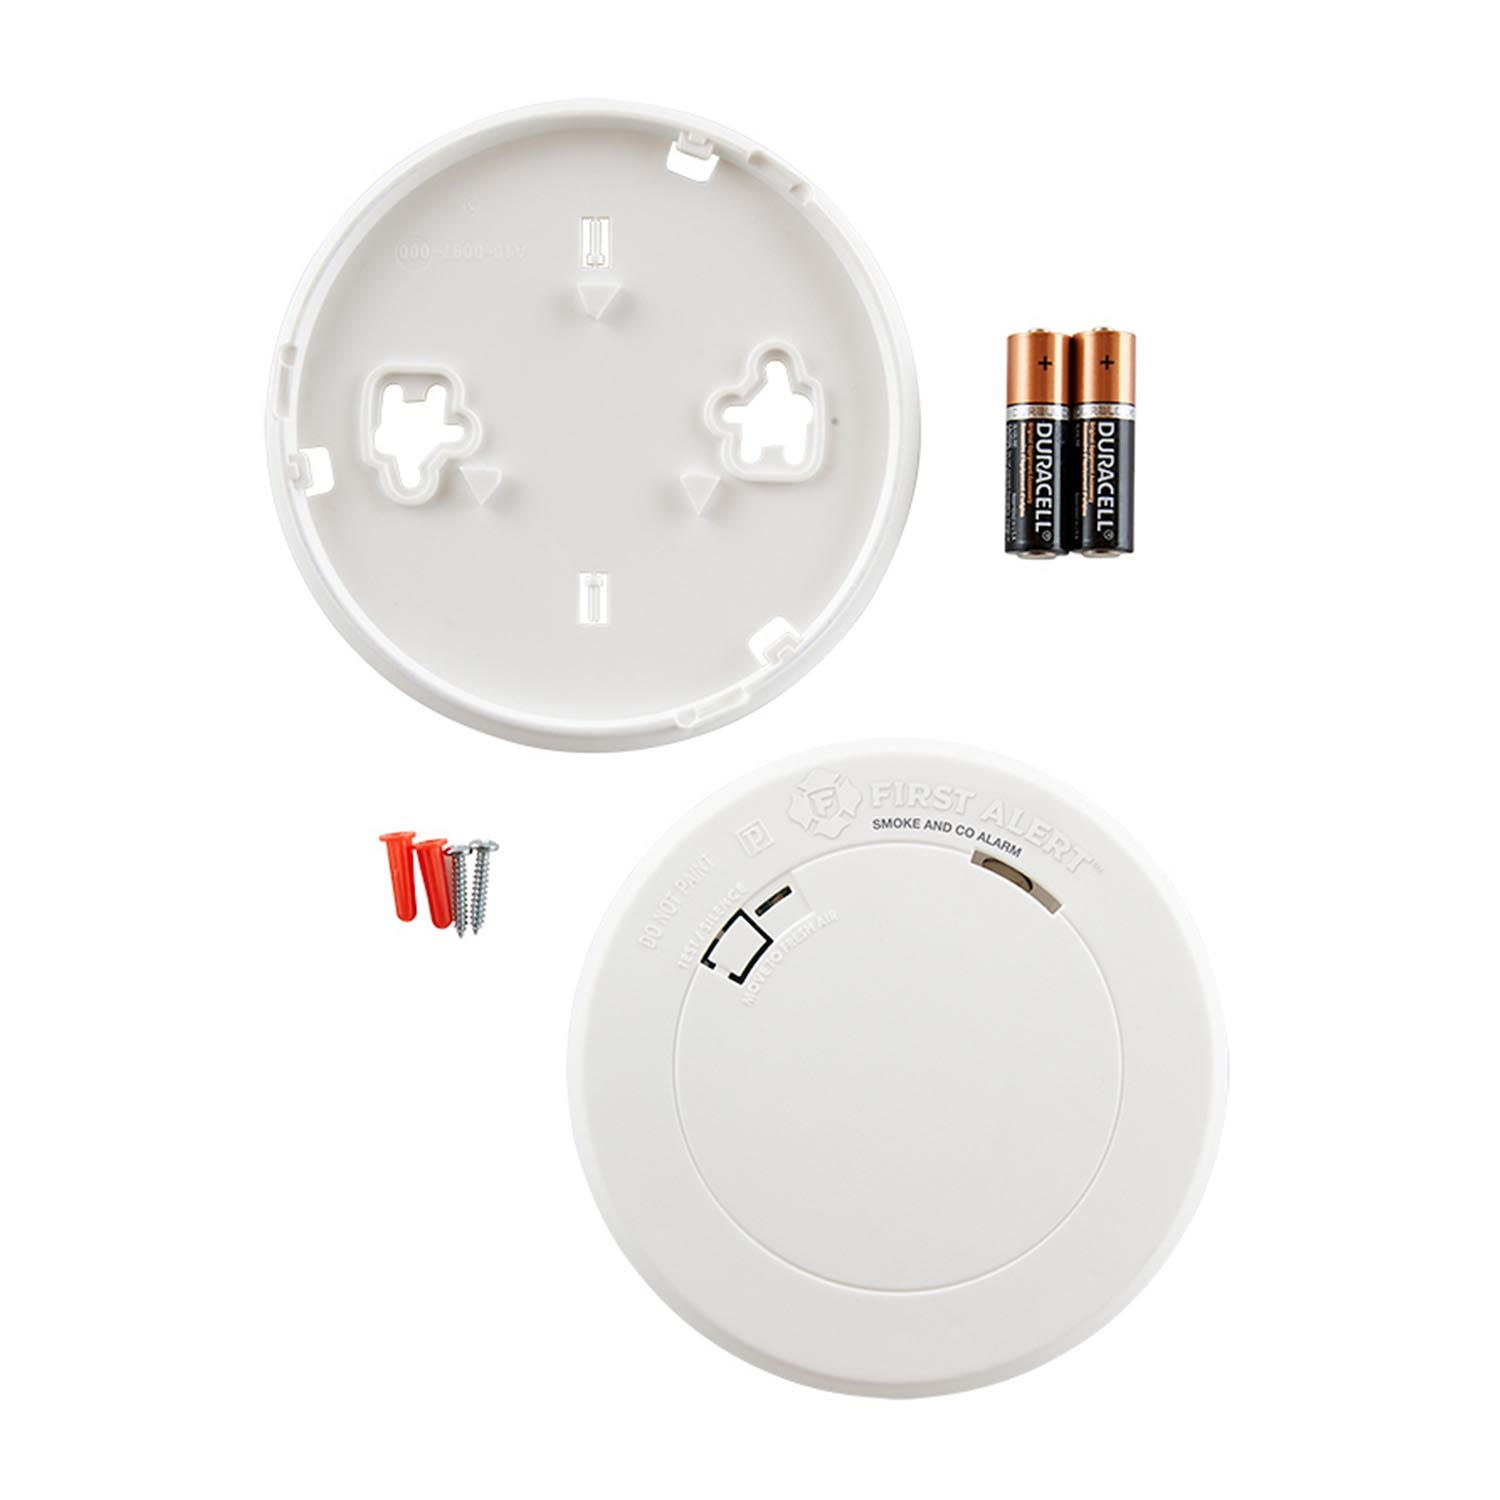 First Alert Slim Design Battery-Operated Combination Smoke & Carbon Monoxide Alarm - PRC700 (1039783)